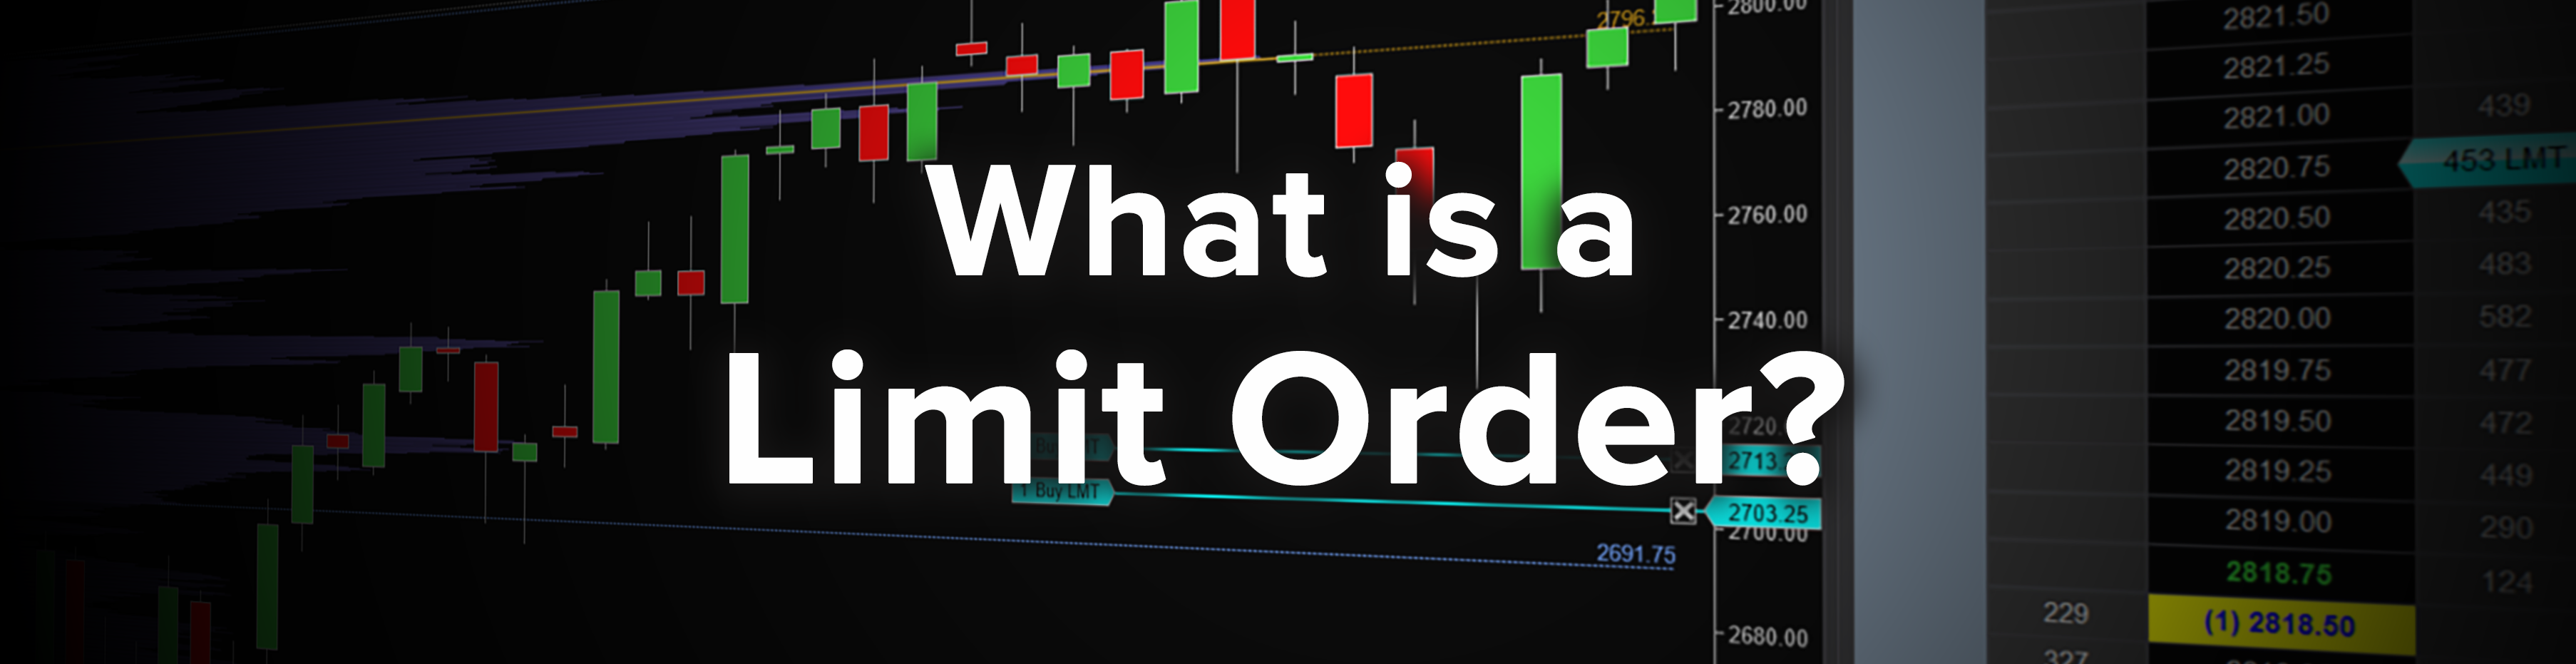 limit order type trading investing broker futures